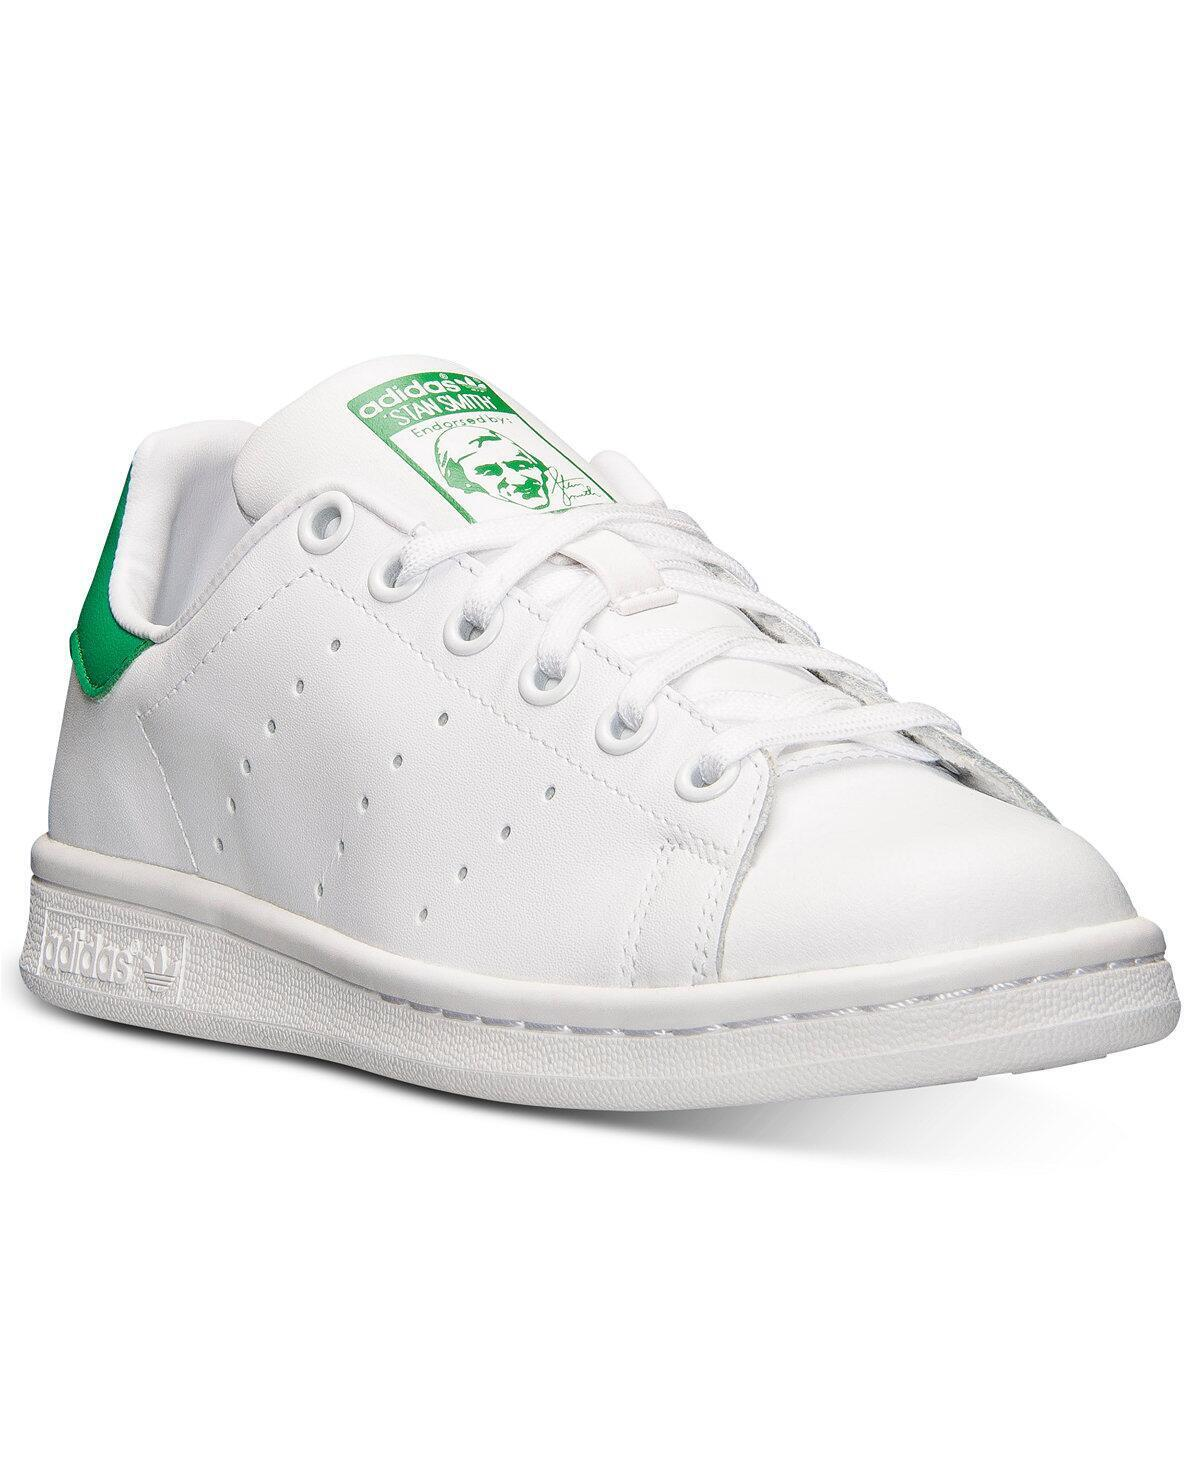 M20605 KIDS GRADE SCHOOL STAN SMITH ADIDAS WHITE/WHITE/GREEN